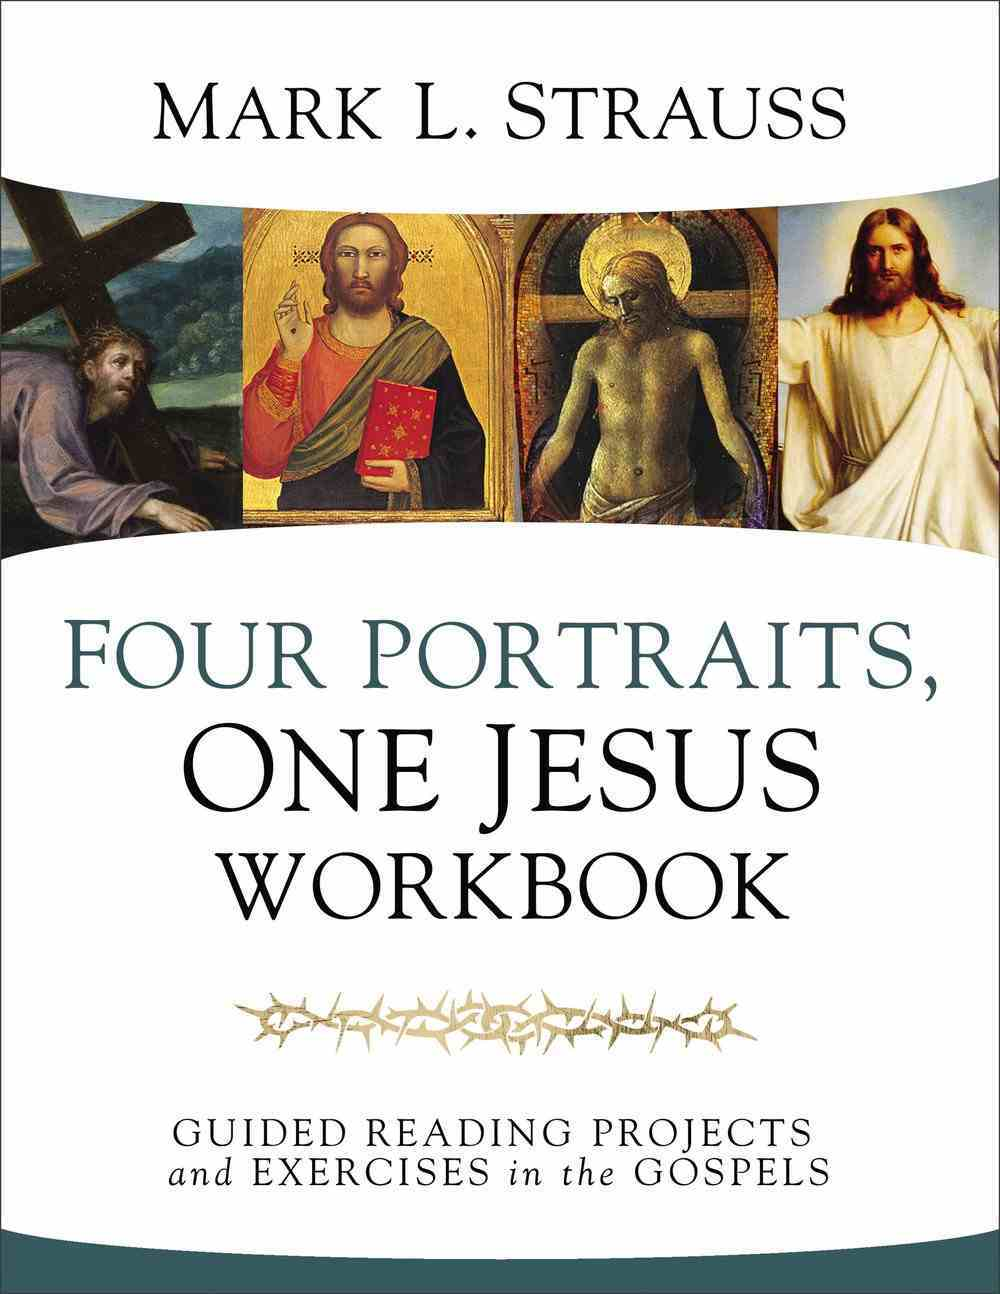 Four Portraits, One Jesus: Guided Reading Projects and Exercises in the Gospels (Workbook) Paperback